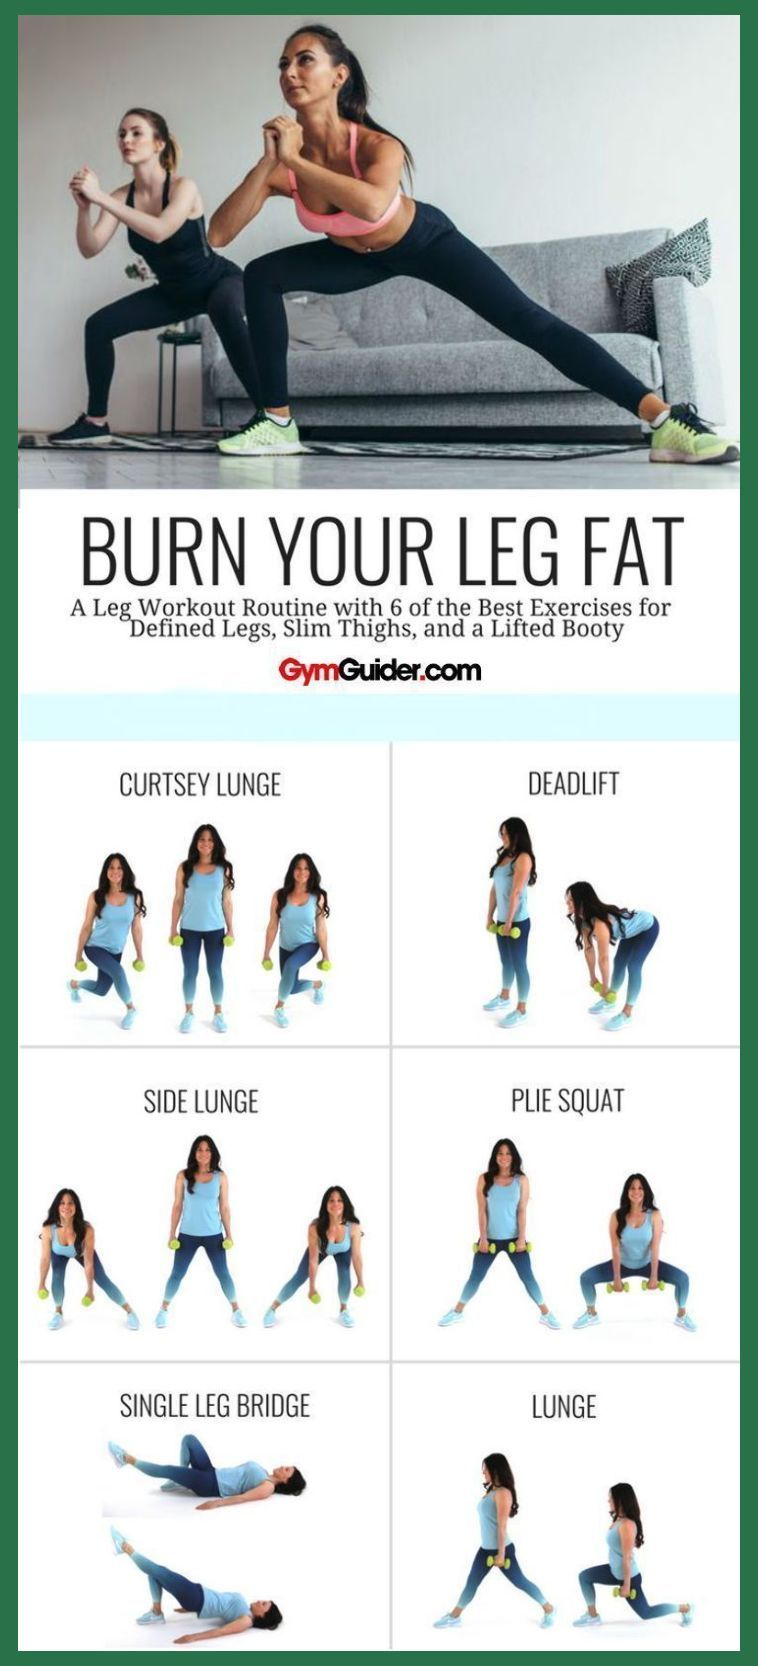 Thigh Workout Tips For Women Exercises That You Should Do For Your Thighs Stairs Workout Floor Workouts Lower Body Workout